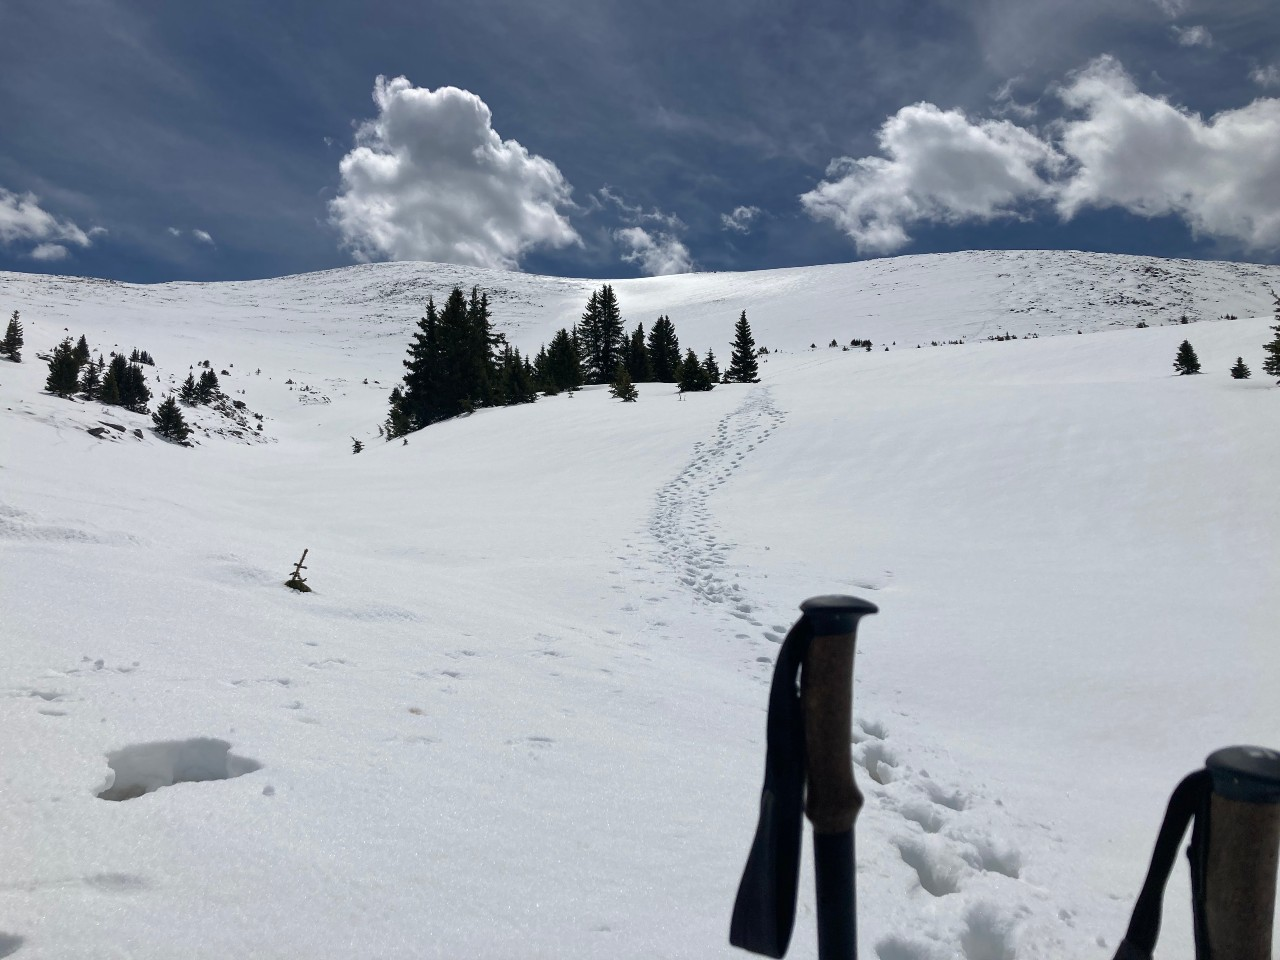 Snowy peak with footprints leading out of sight and ski poles in the foreground